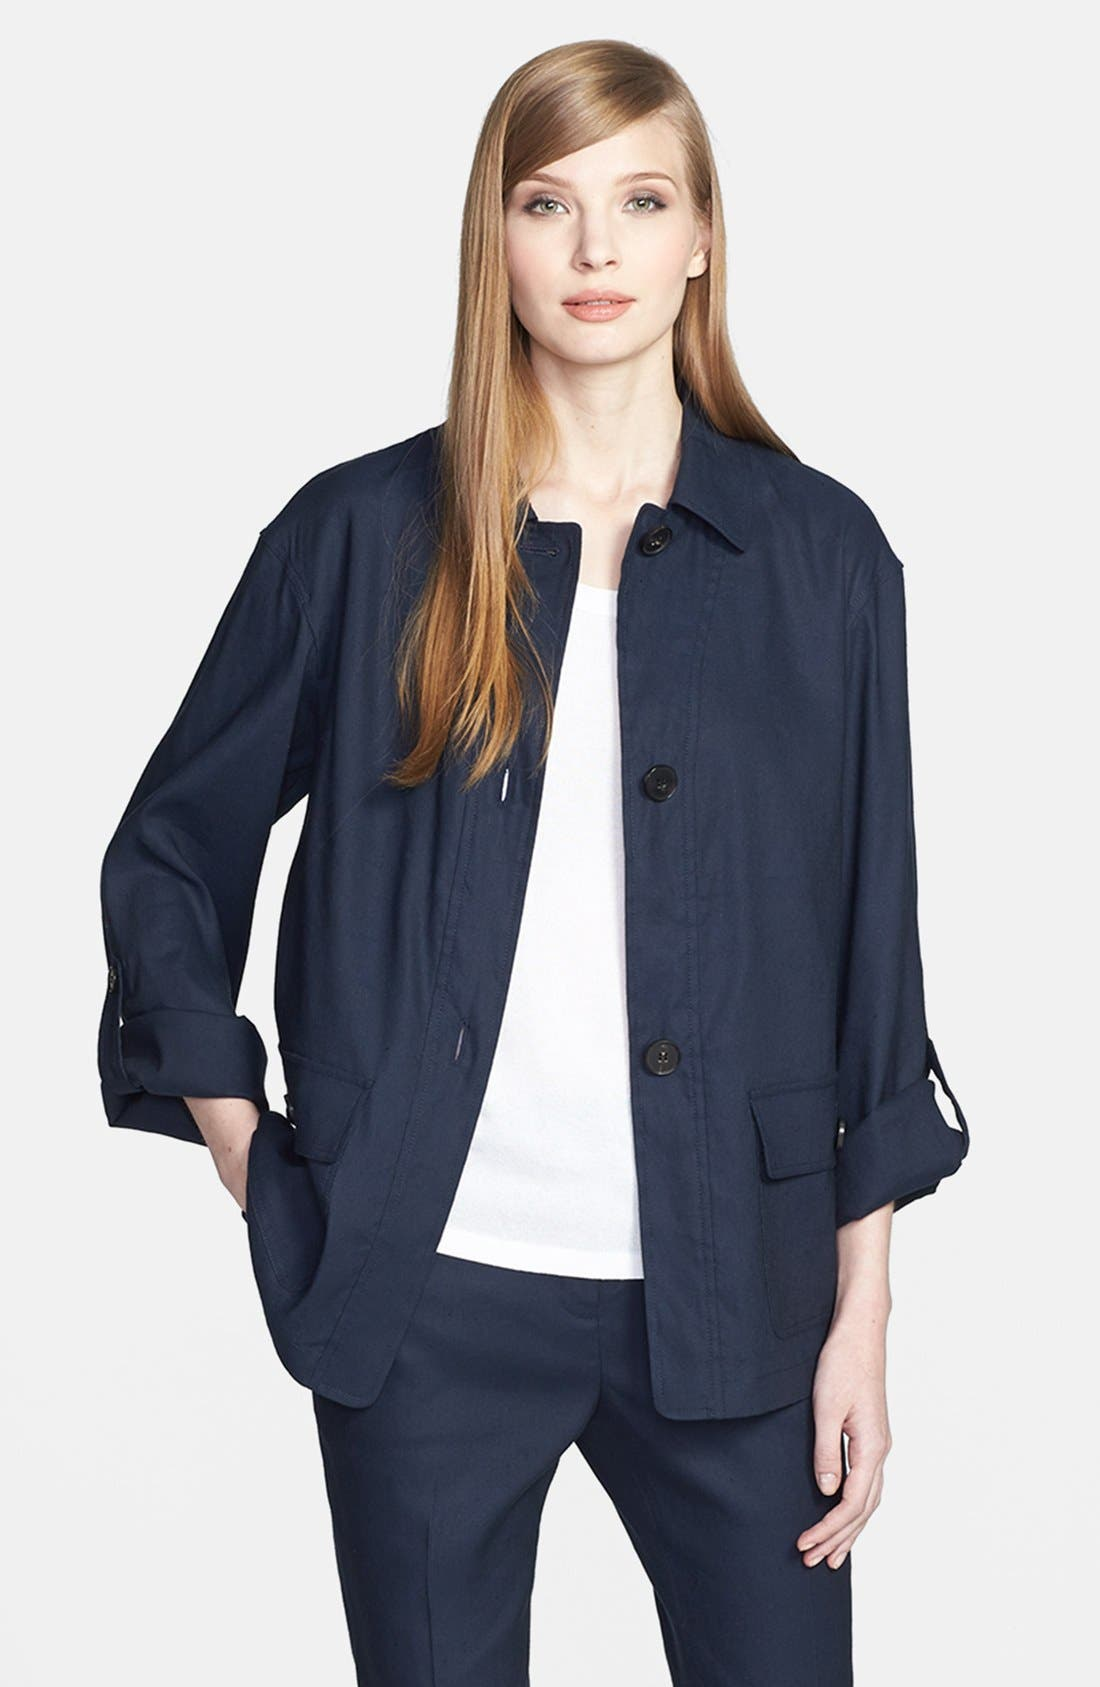 Alternate Image 1 Selected - Lafayette 148 New York 'Toby' Linen Blend Jacket